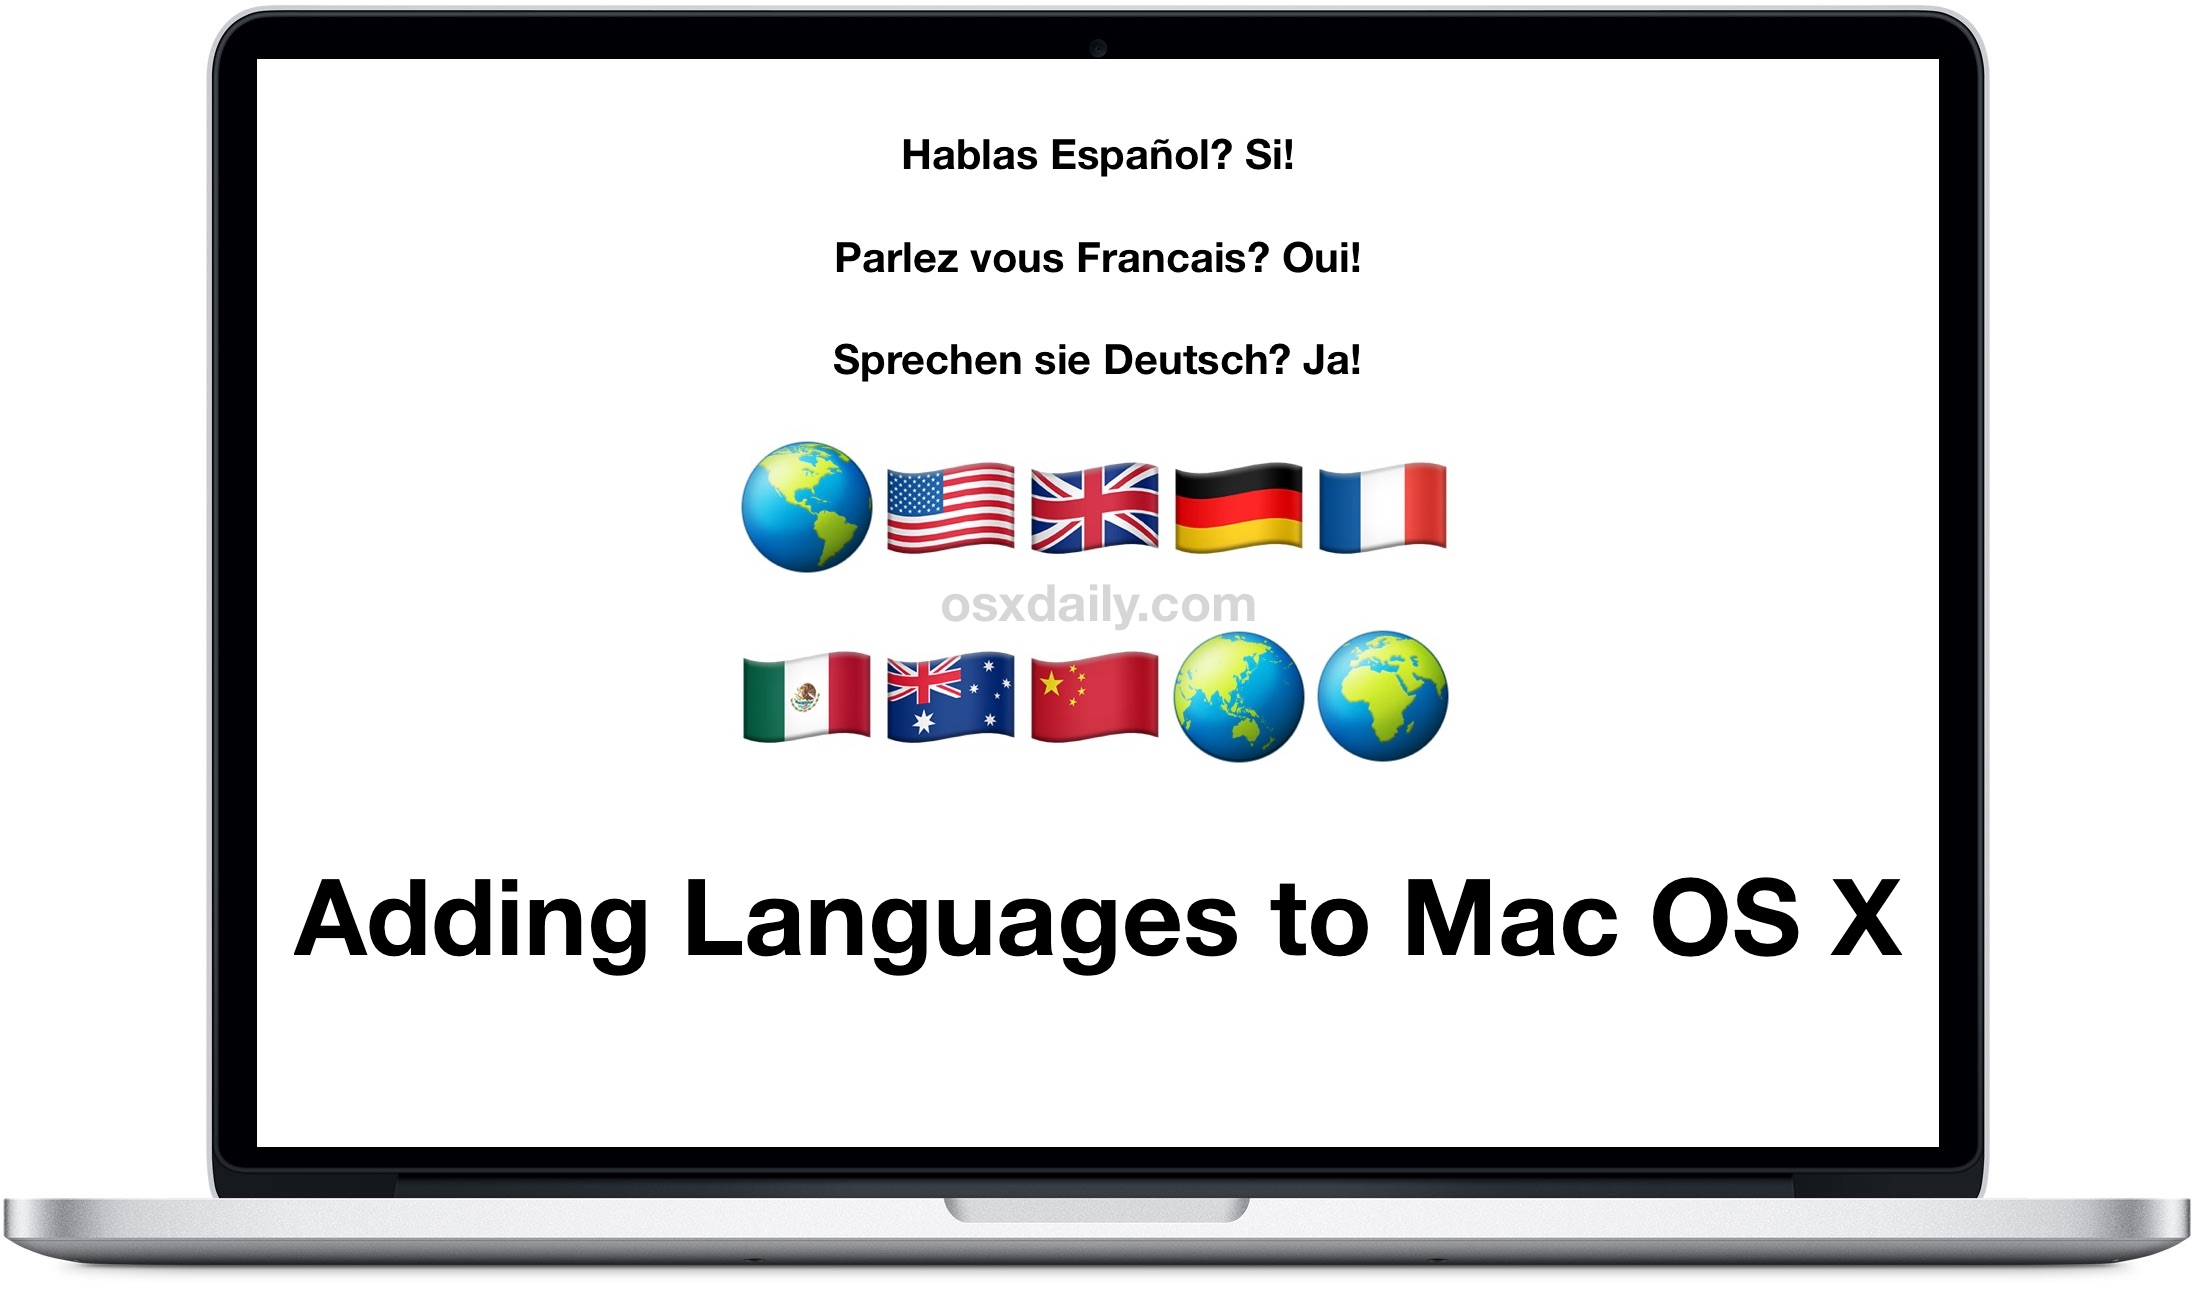 Add a new language to Mac OS X